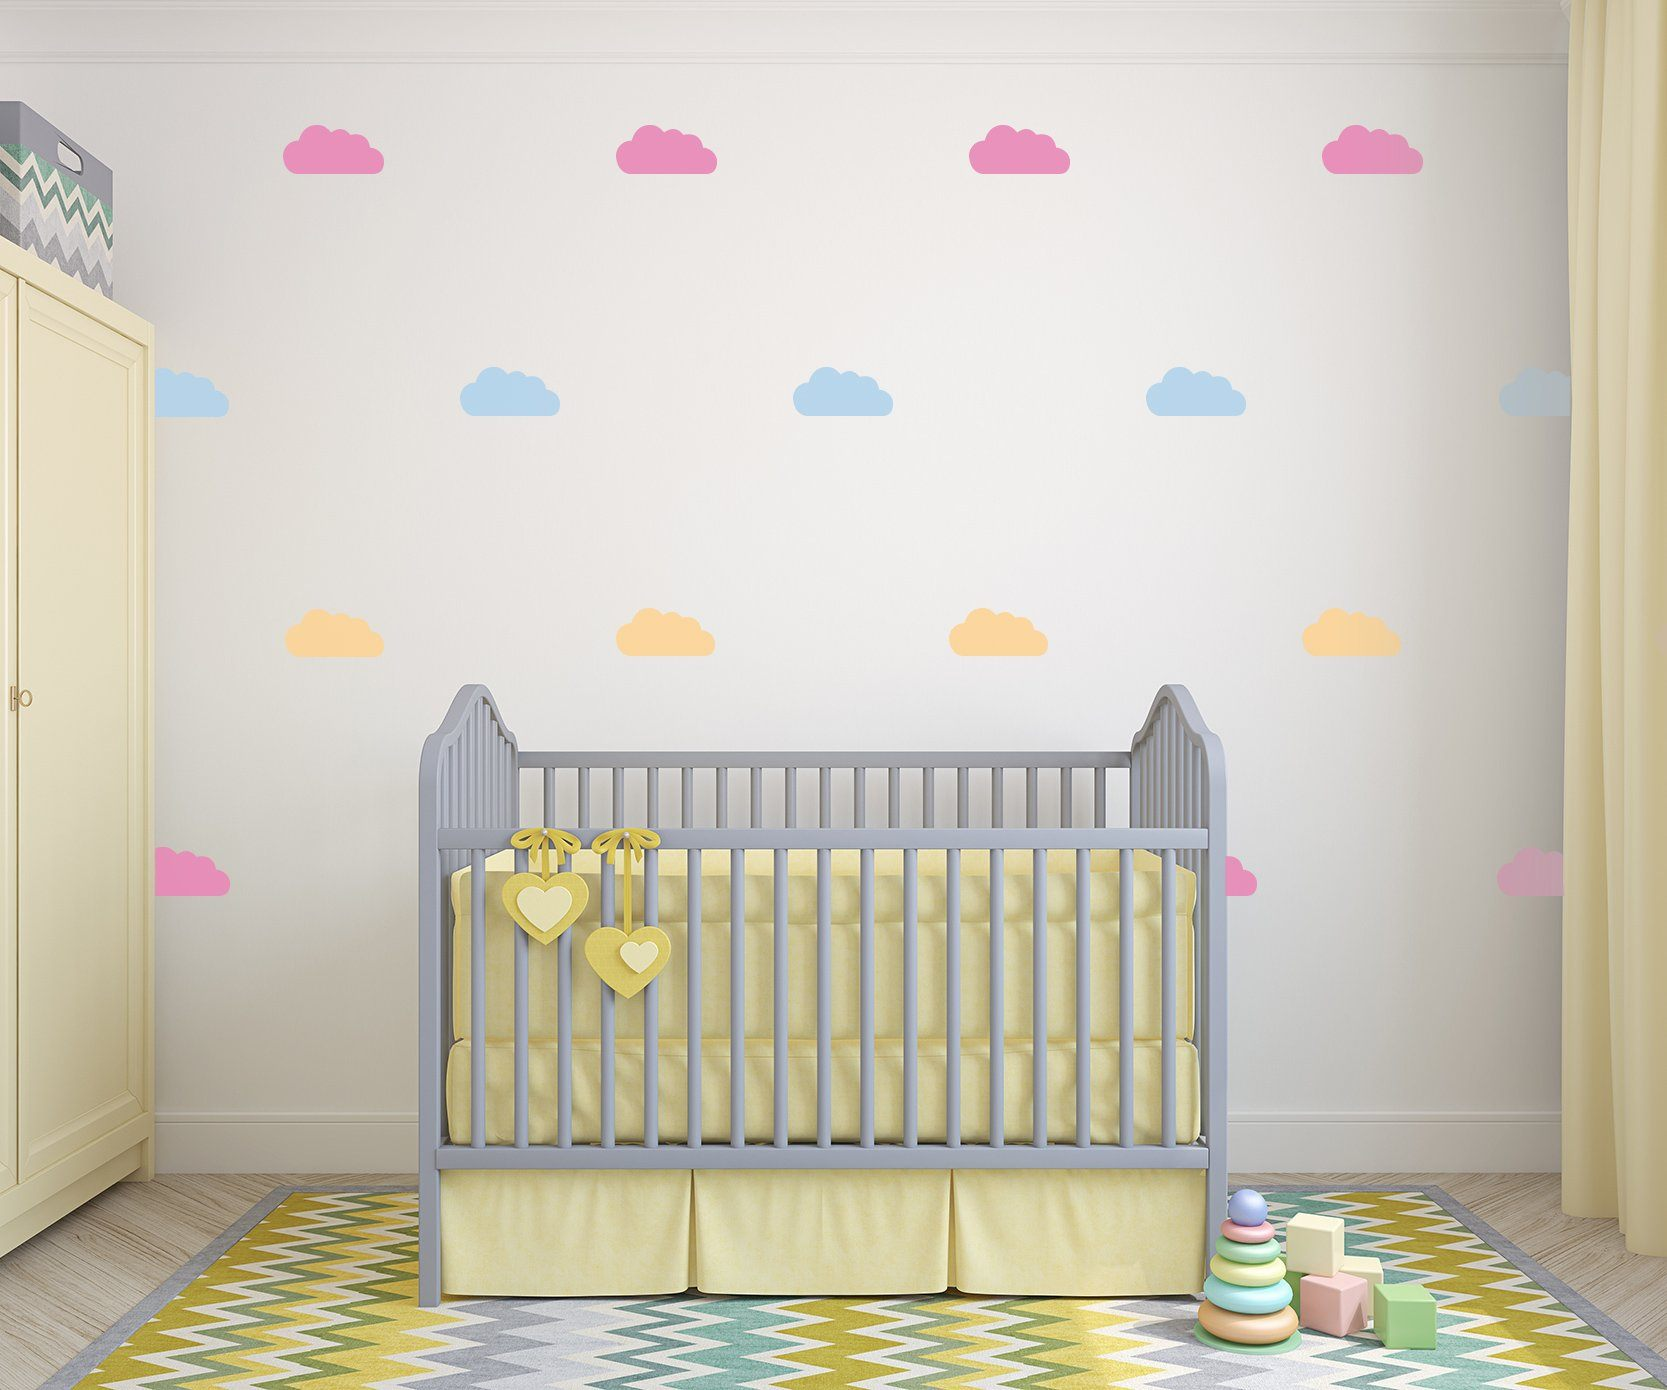 Assorted Clouds Wall Art - Vinyl Wall Decals For Nurseries, Children's Rooms, And Home Decor